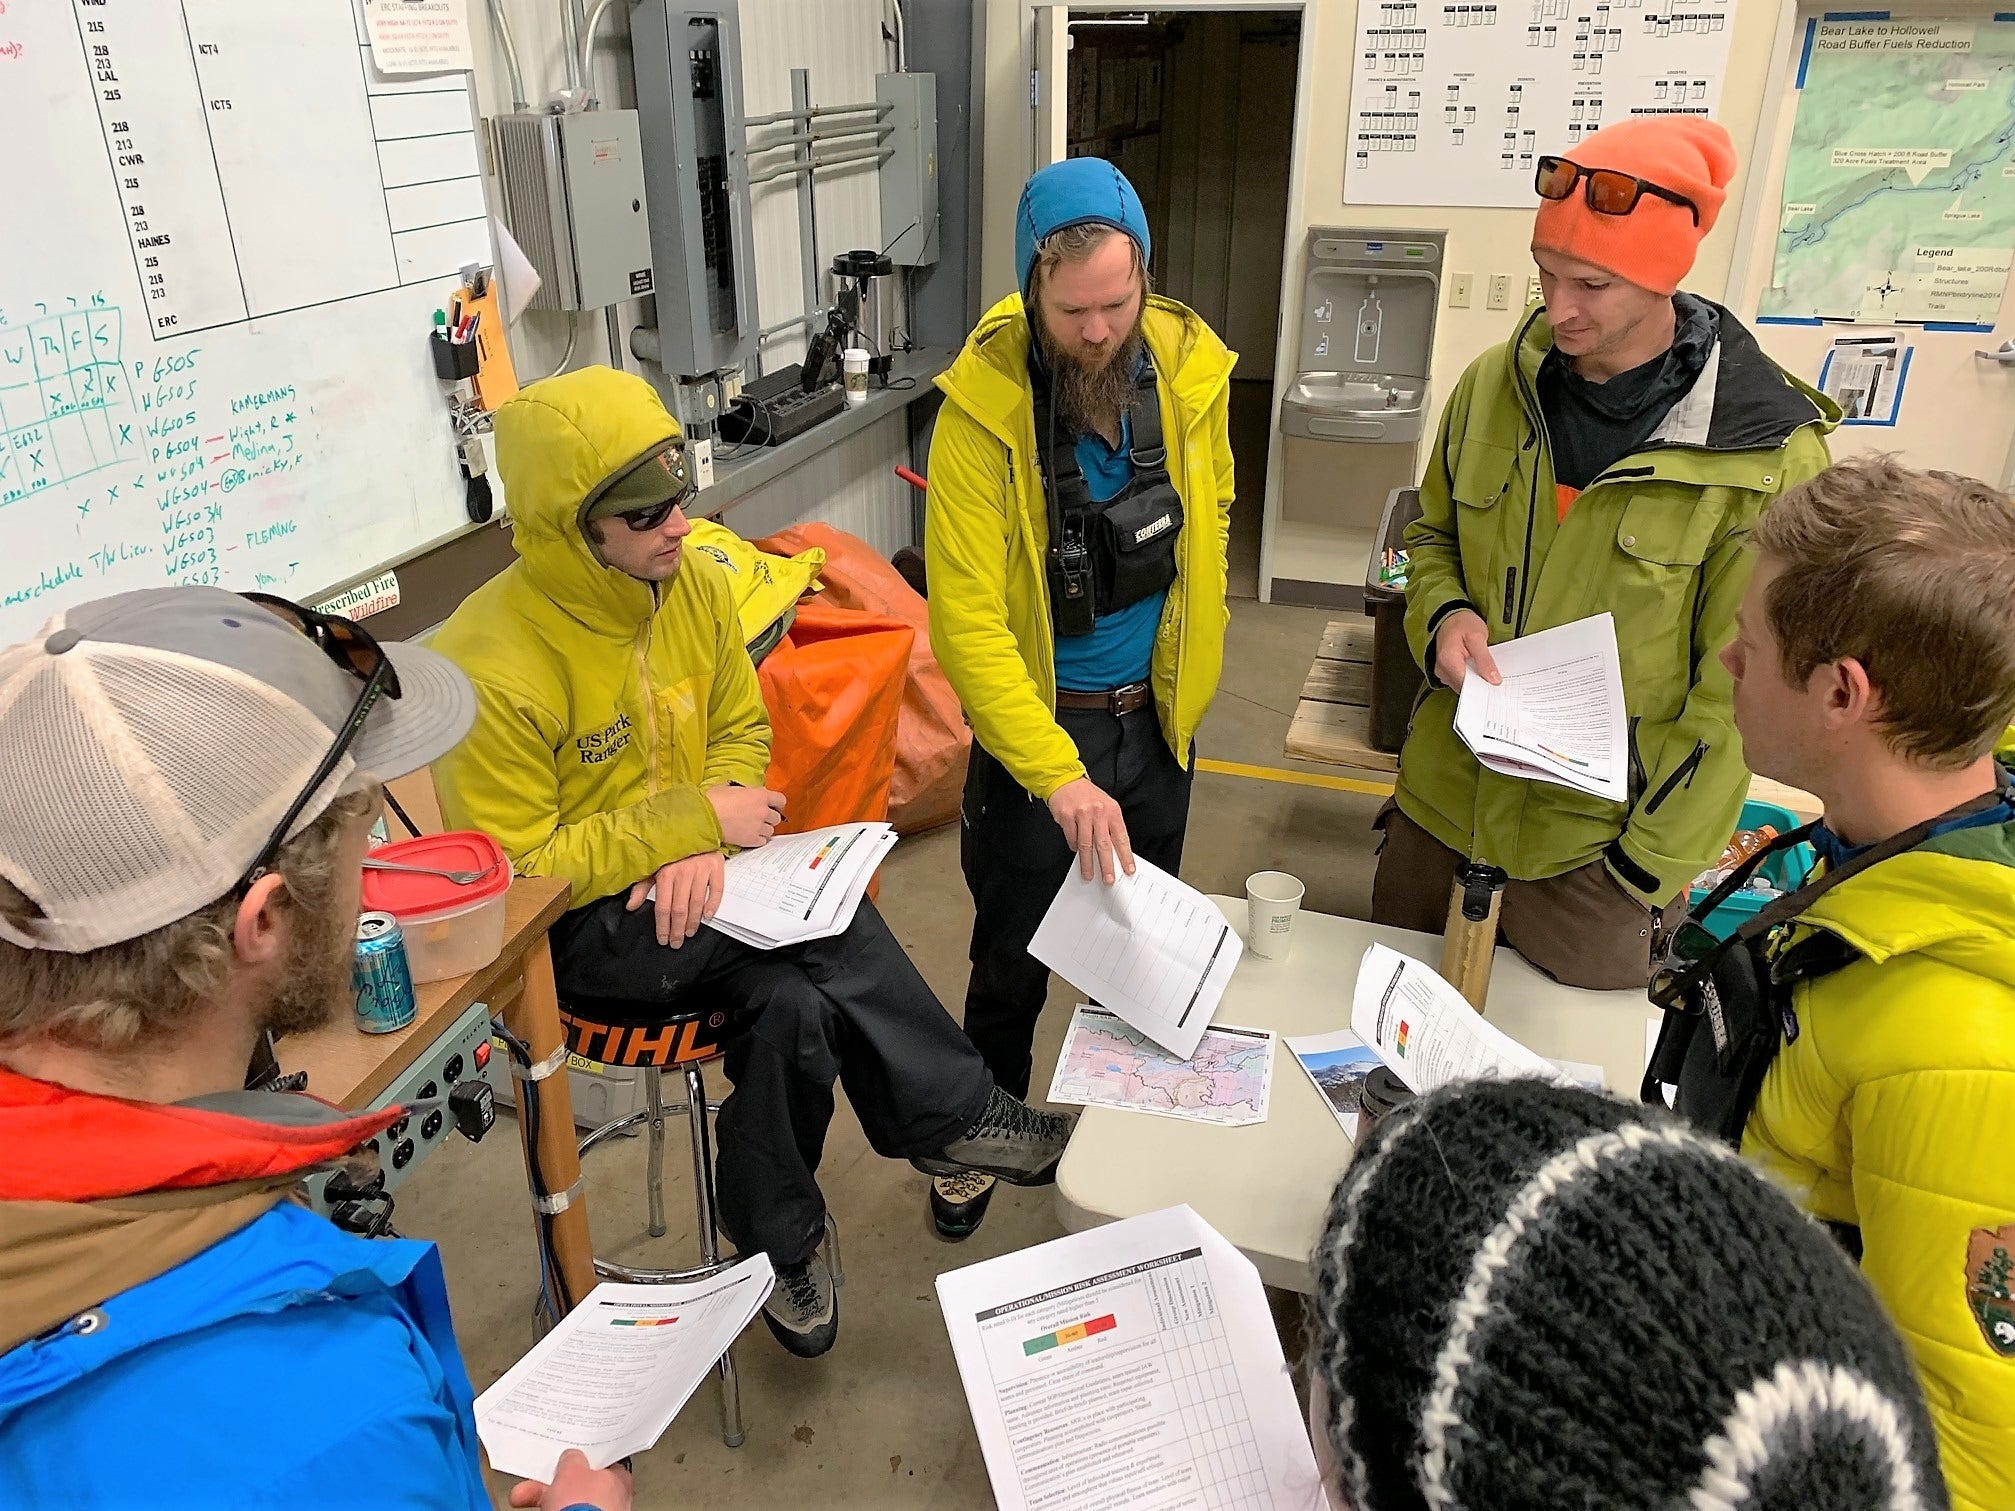 A search crew conducts a briefing Wednesday before searching for James Pruitt, 70, of Etowah, Tennessee, who is missing in Rocky Mountain National Park.